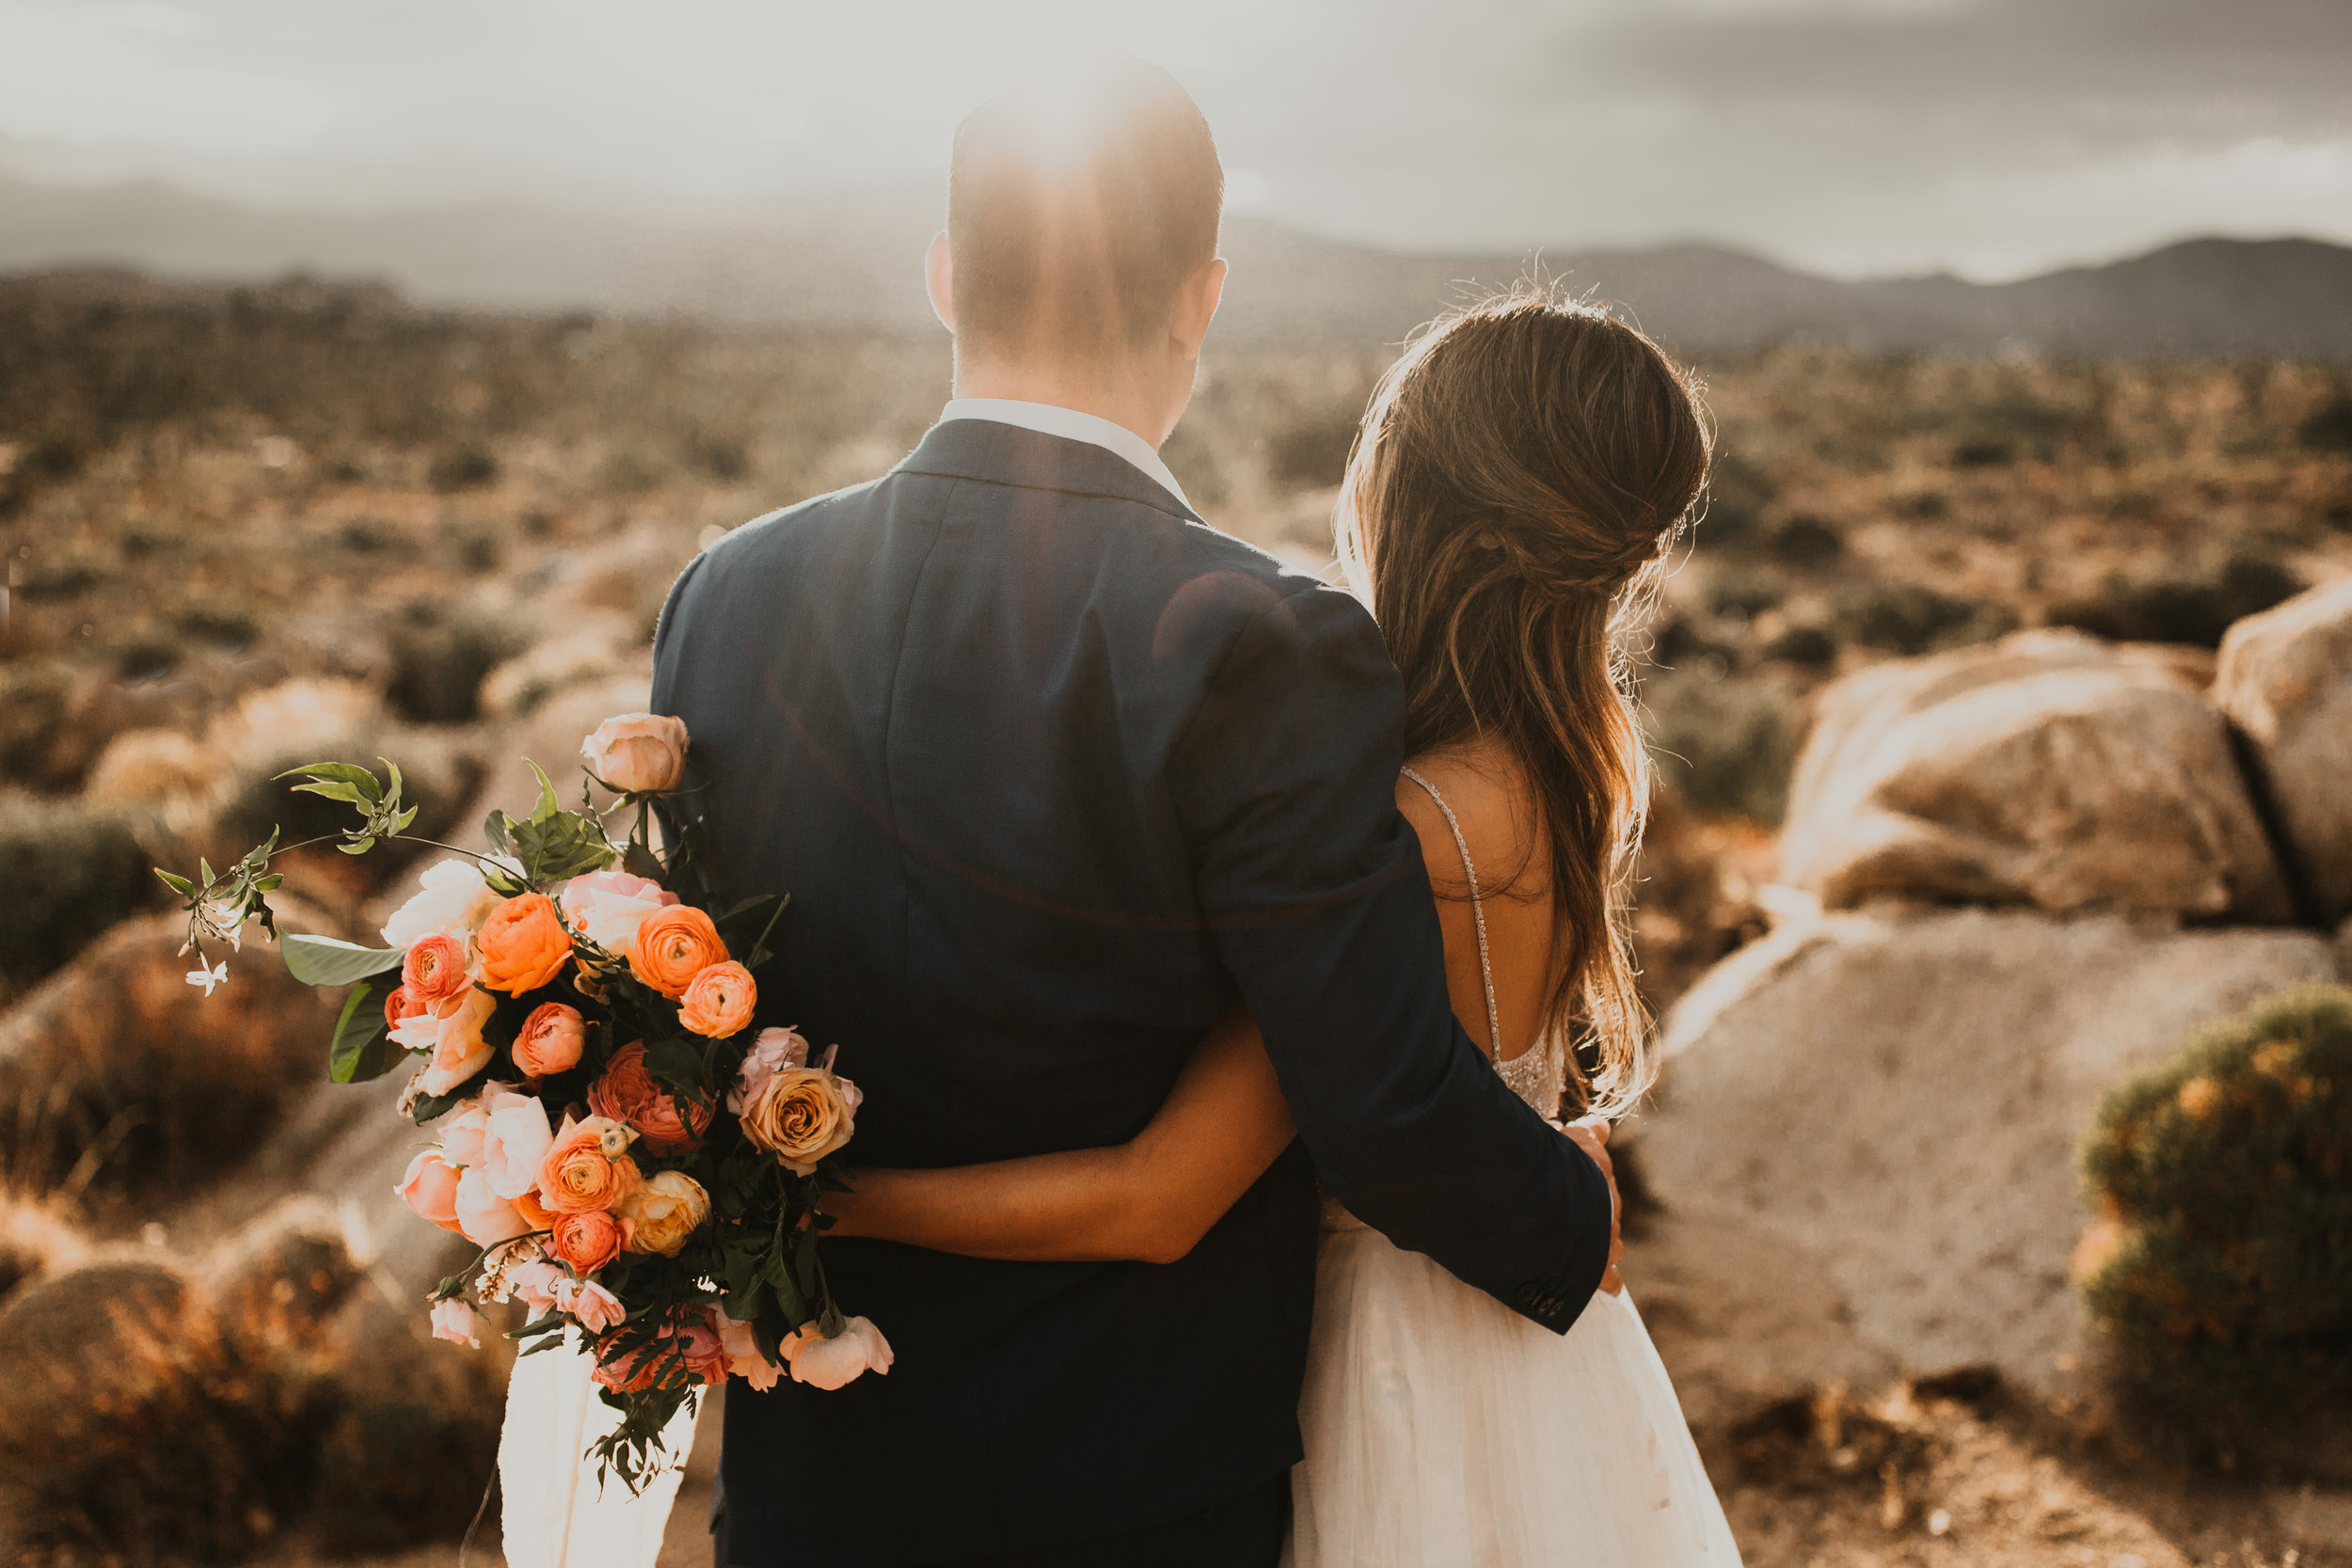 Sunset, wedding day photography, braid half up-do, wedding hair, wedding hair inspiration. Bridal Hair and Makeup by Vanity Belle in Orange County (Costa Mesa/Newport Beach) and San Diego (La Jolla)